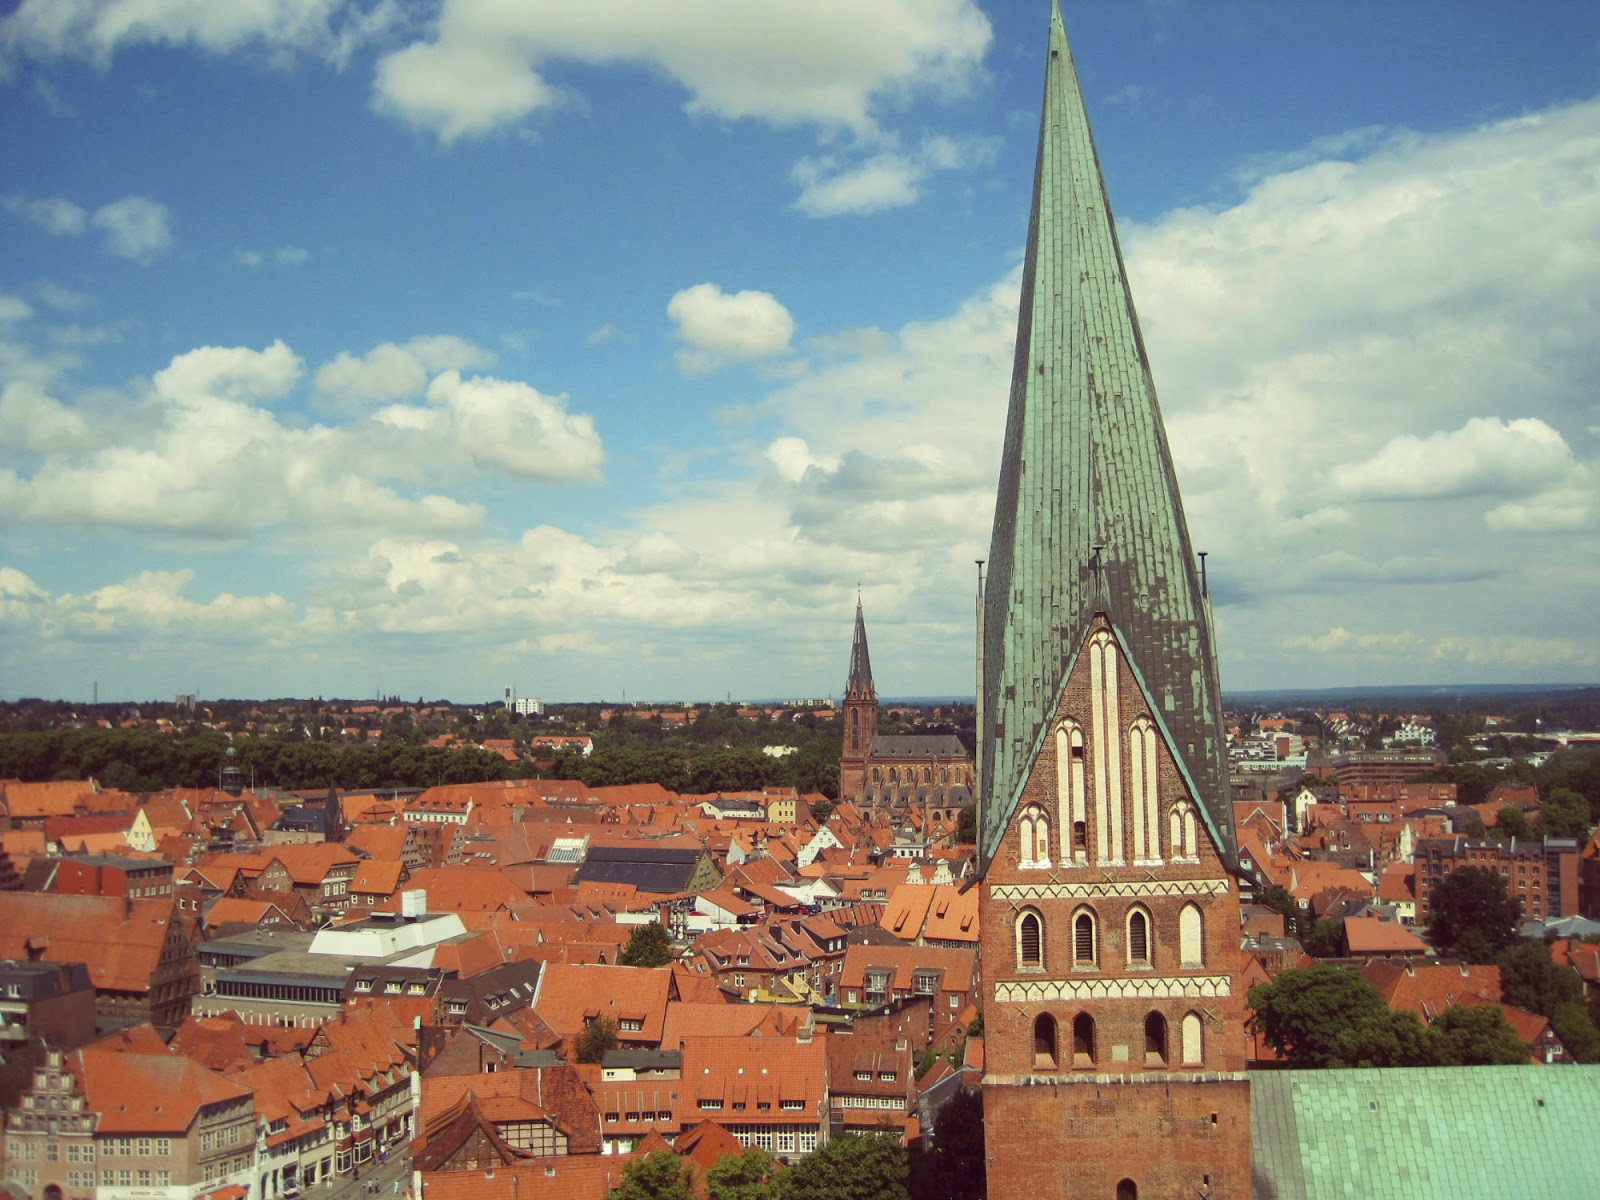 View from the old Lüneburg water tower